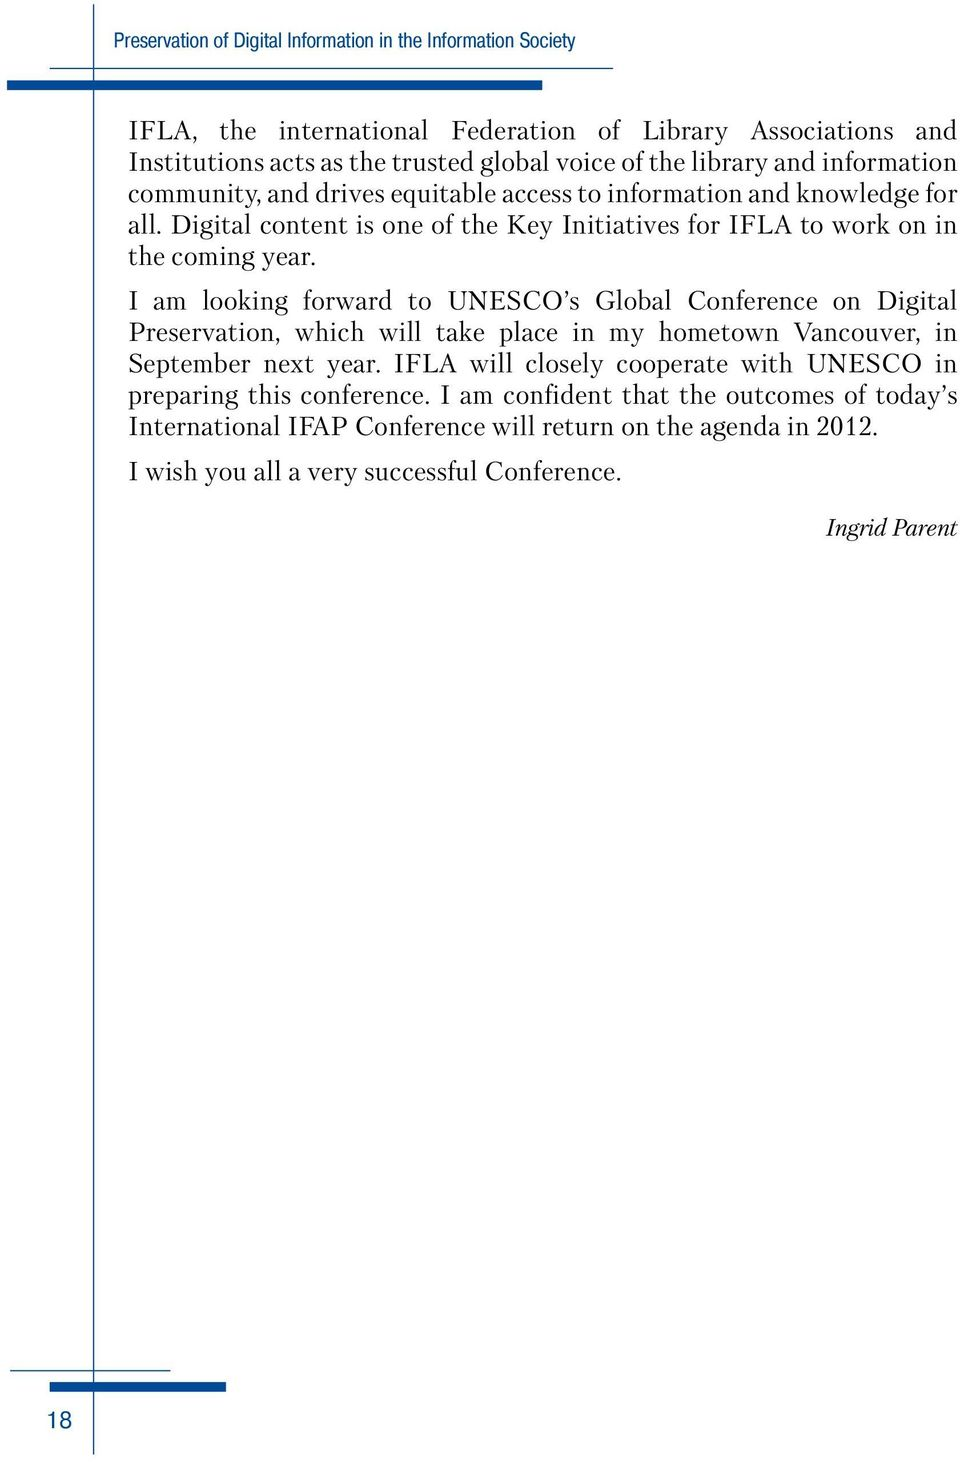 I am looking forward to UNESCO s Global Conference on Digital Preservation, which will take place in my hometown Vancouver, in September next year.